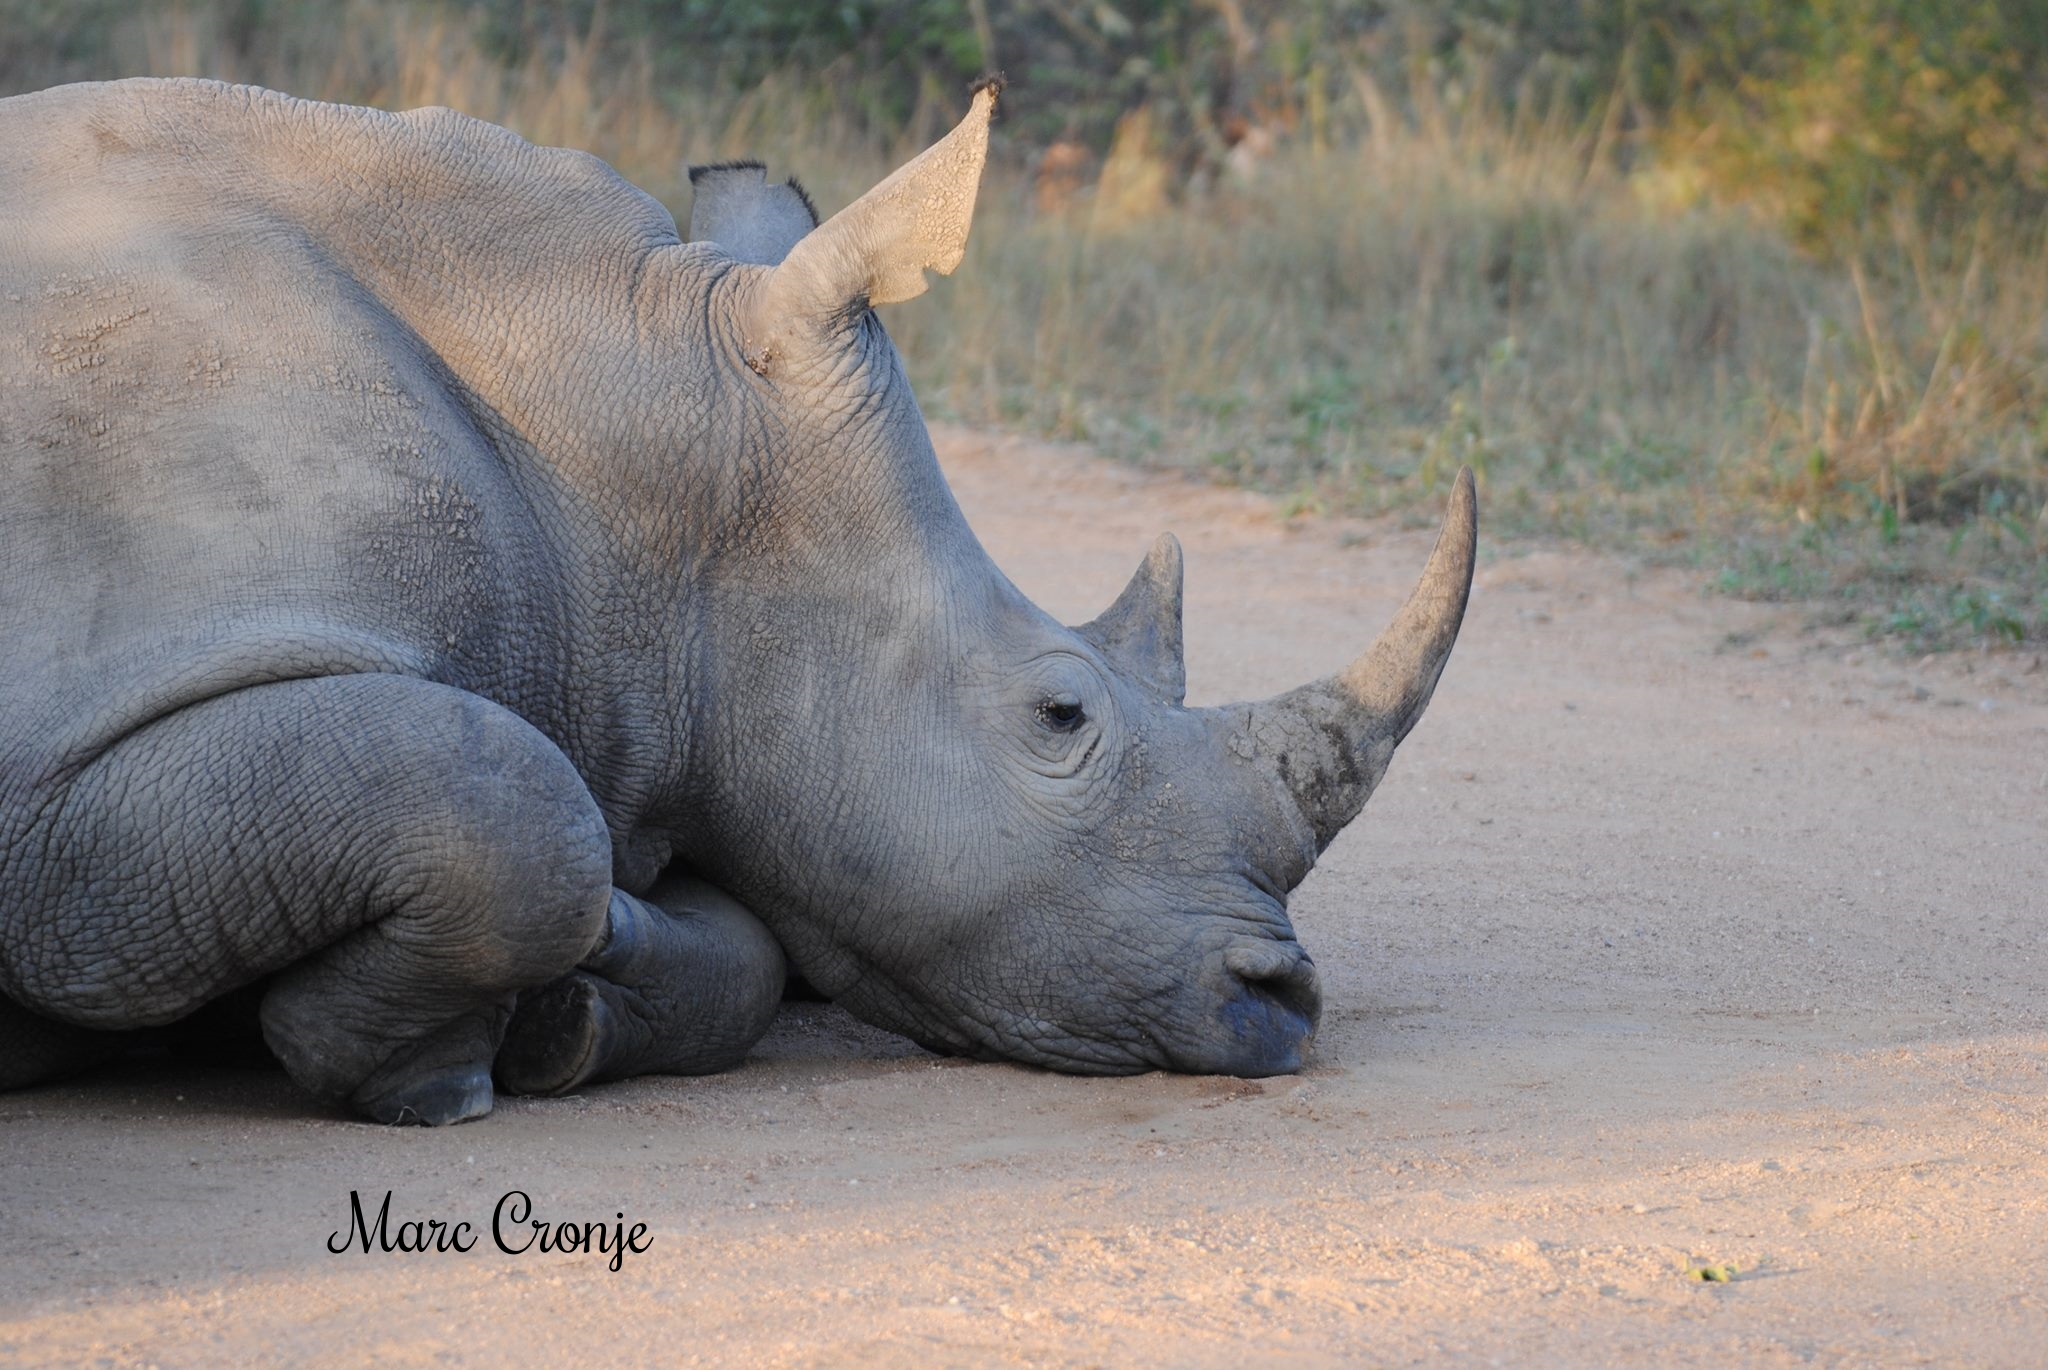 This white rhino is perfectly healthy - just napping in the mid-day sun. Note his front legs curled under, the back legs will be in the same position. Image: ©Marc Cronje, Independent Field Guide. Destination: Kruger Park, South Africa